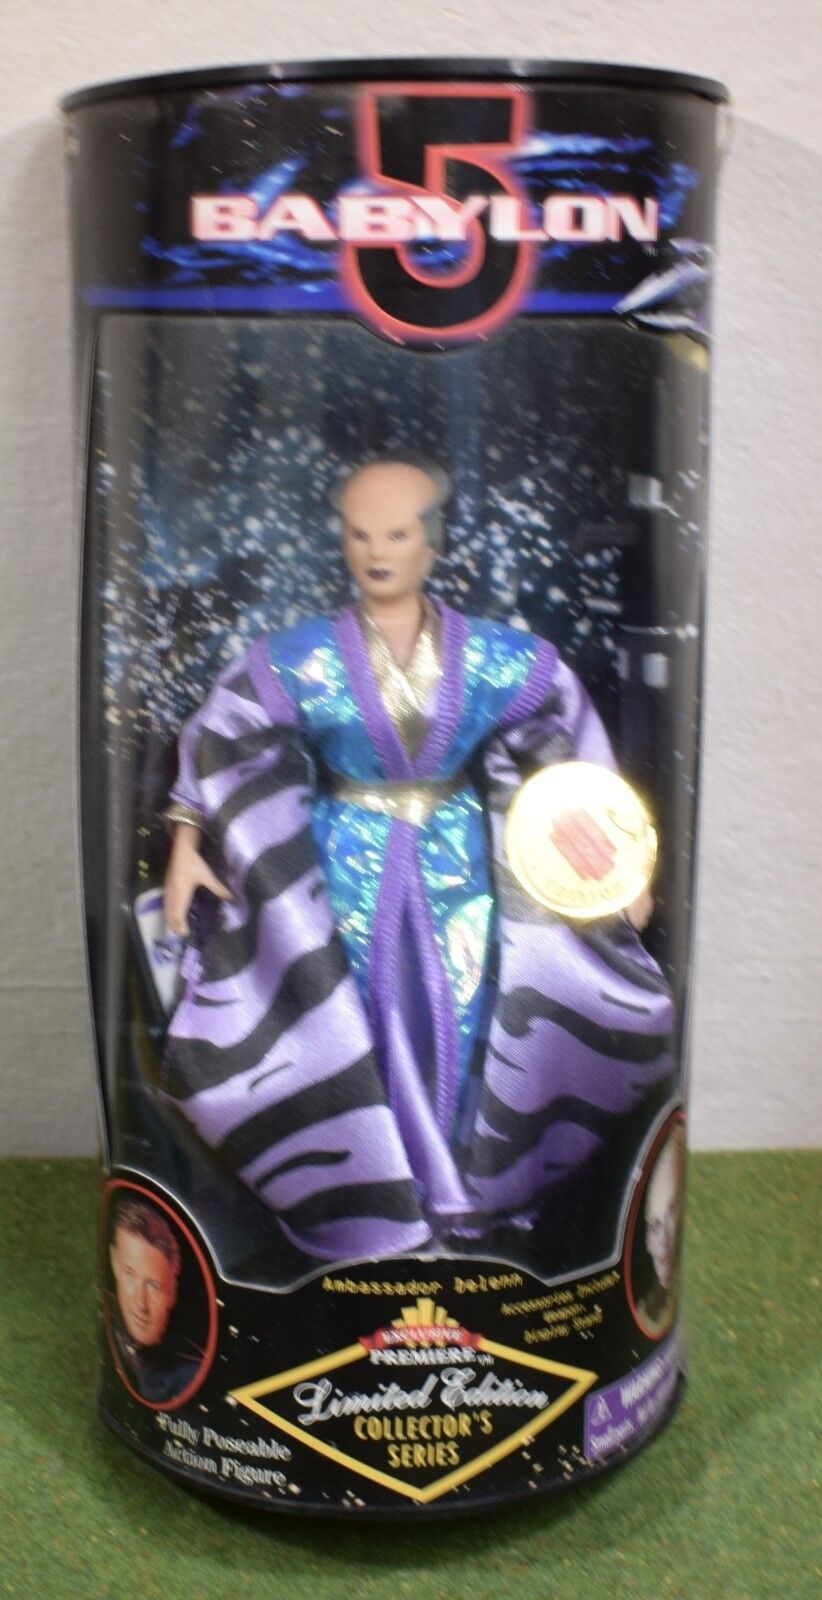 EXCLUSIVE PREMIERE DIAMOND COMIC BABYLON 5 AMBASSADOR DELENN DELENN DELENN ACTION FIGURE 02945d